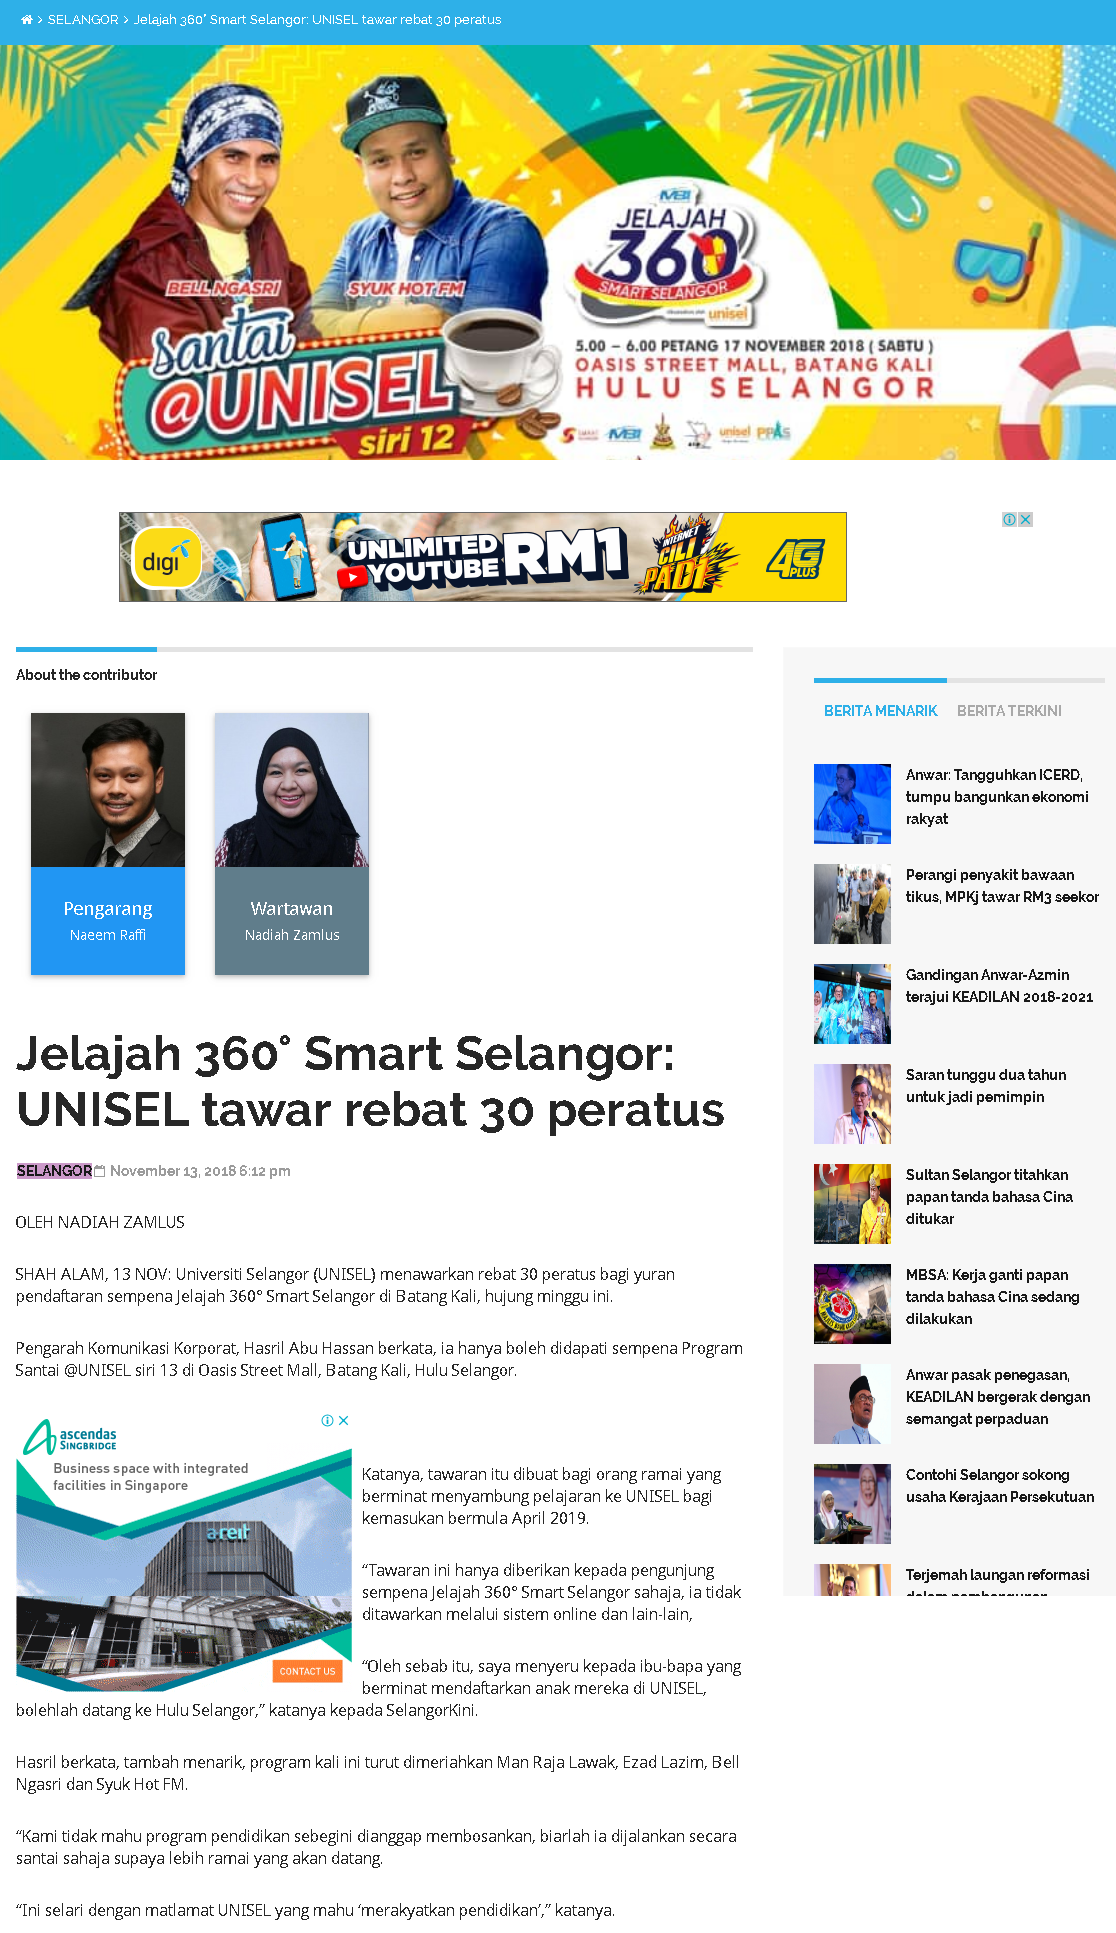 Selangorkini Online- 13 November 2018